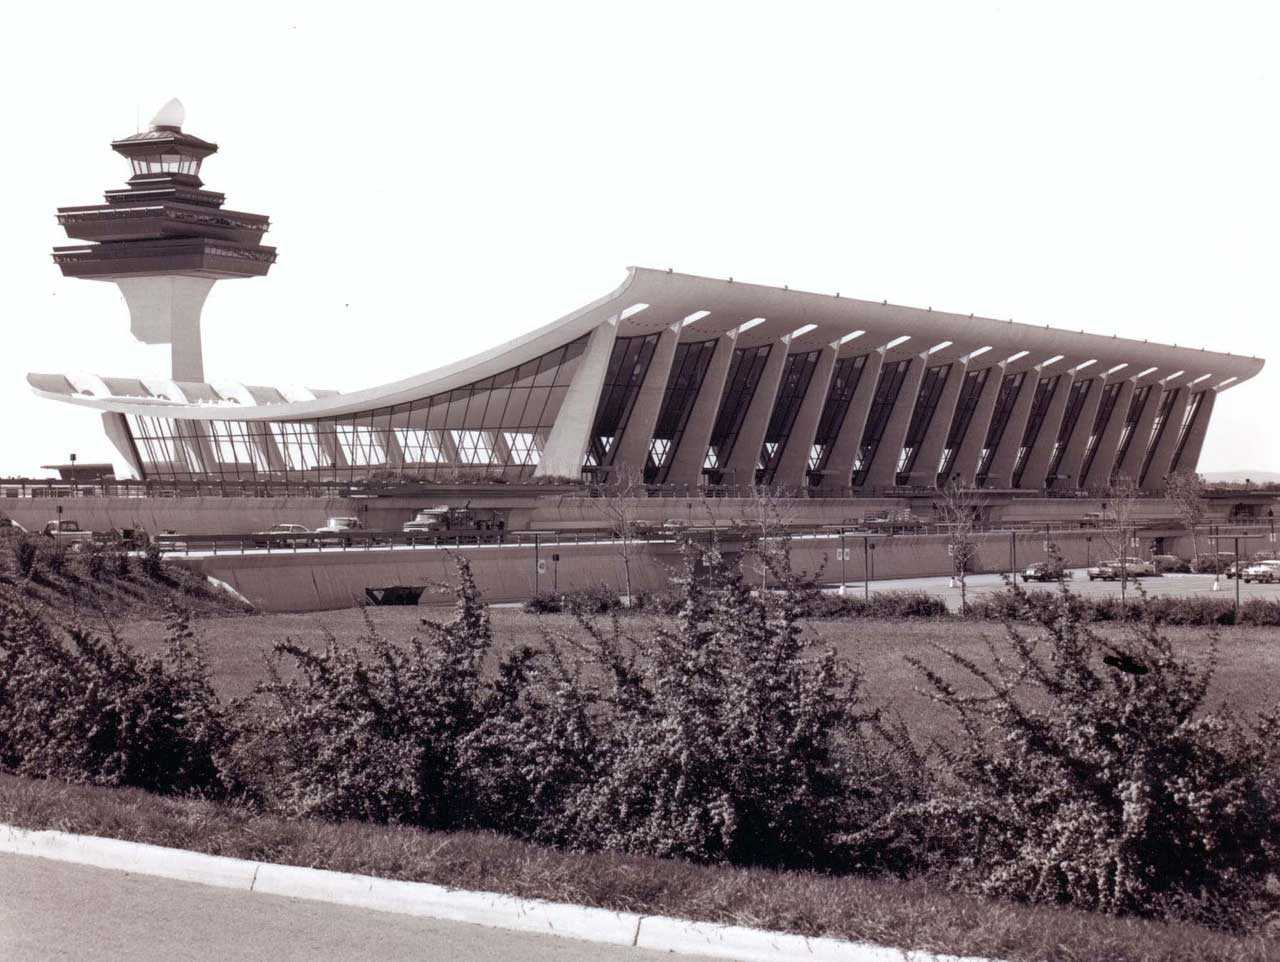 Concrete, Steel and Glass: Dulles Airport is the Port of the Future